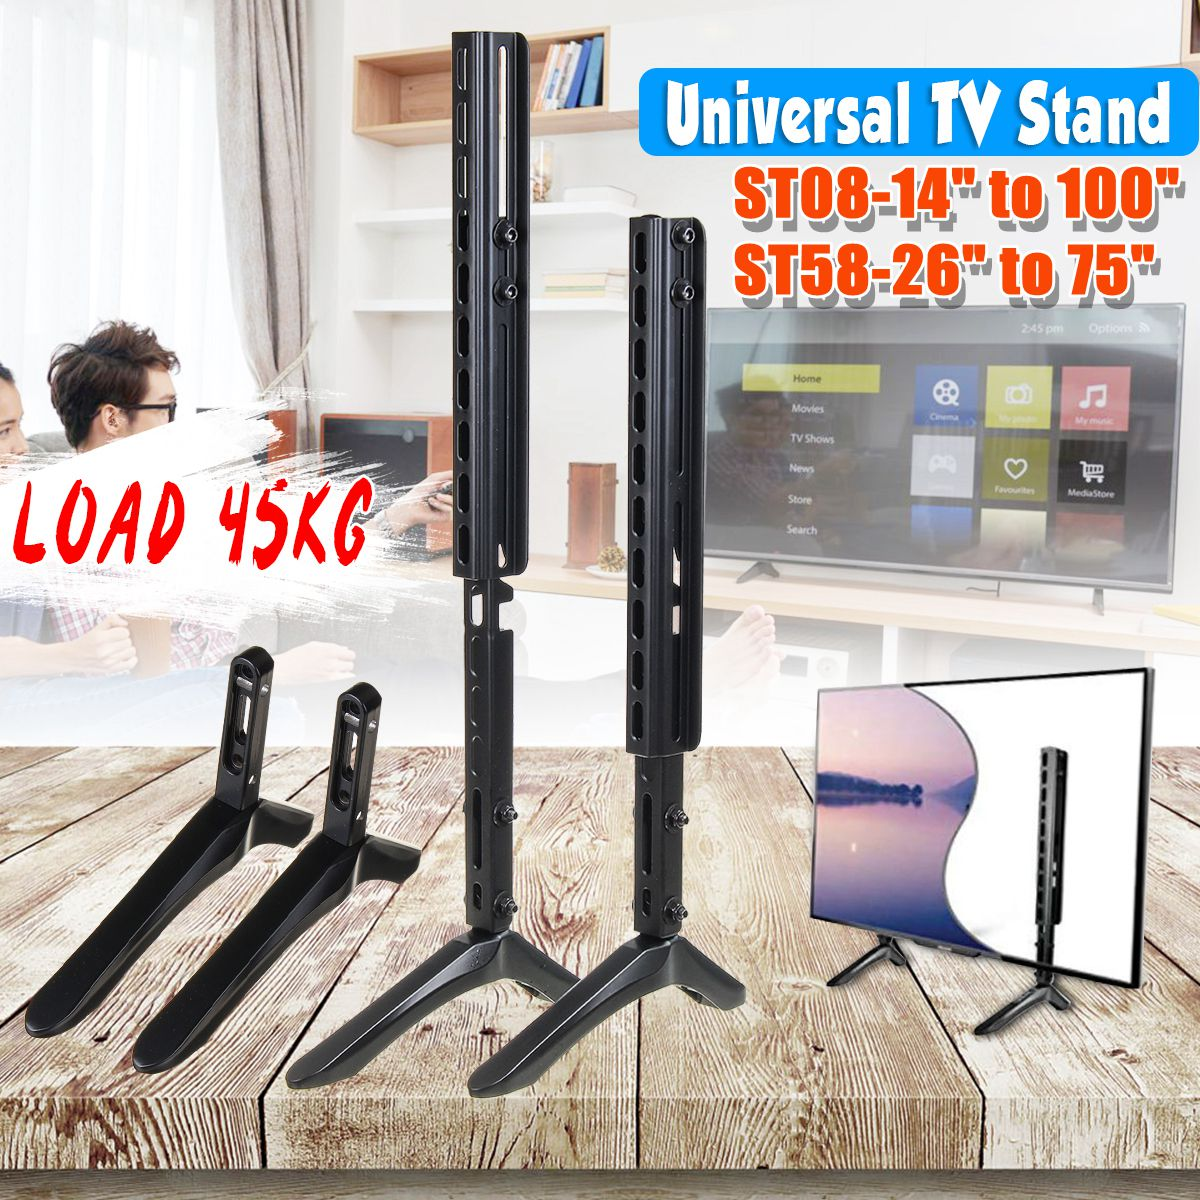 14-100 pouces universel Table TV support Base LCD écran plat Table Top piédestal montage fer installation facile charge jusqu'à 45 KG